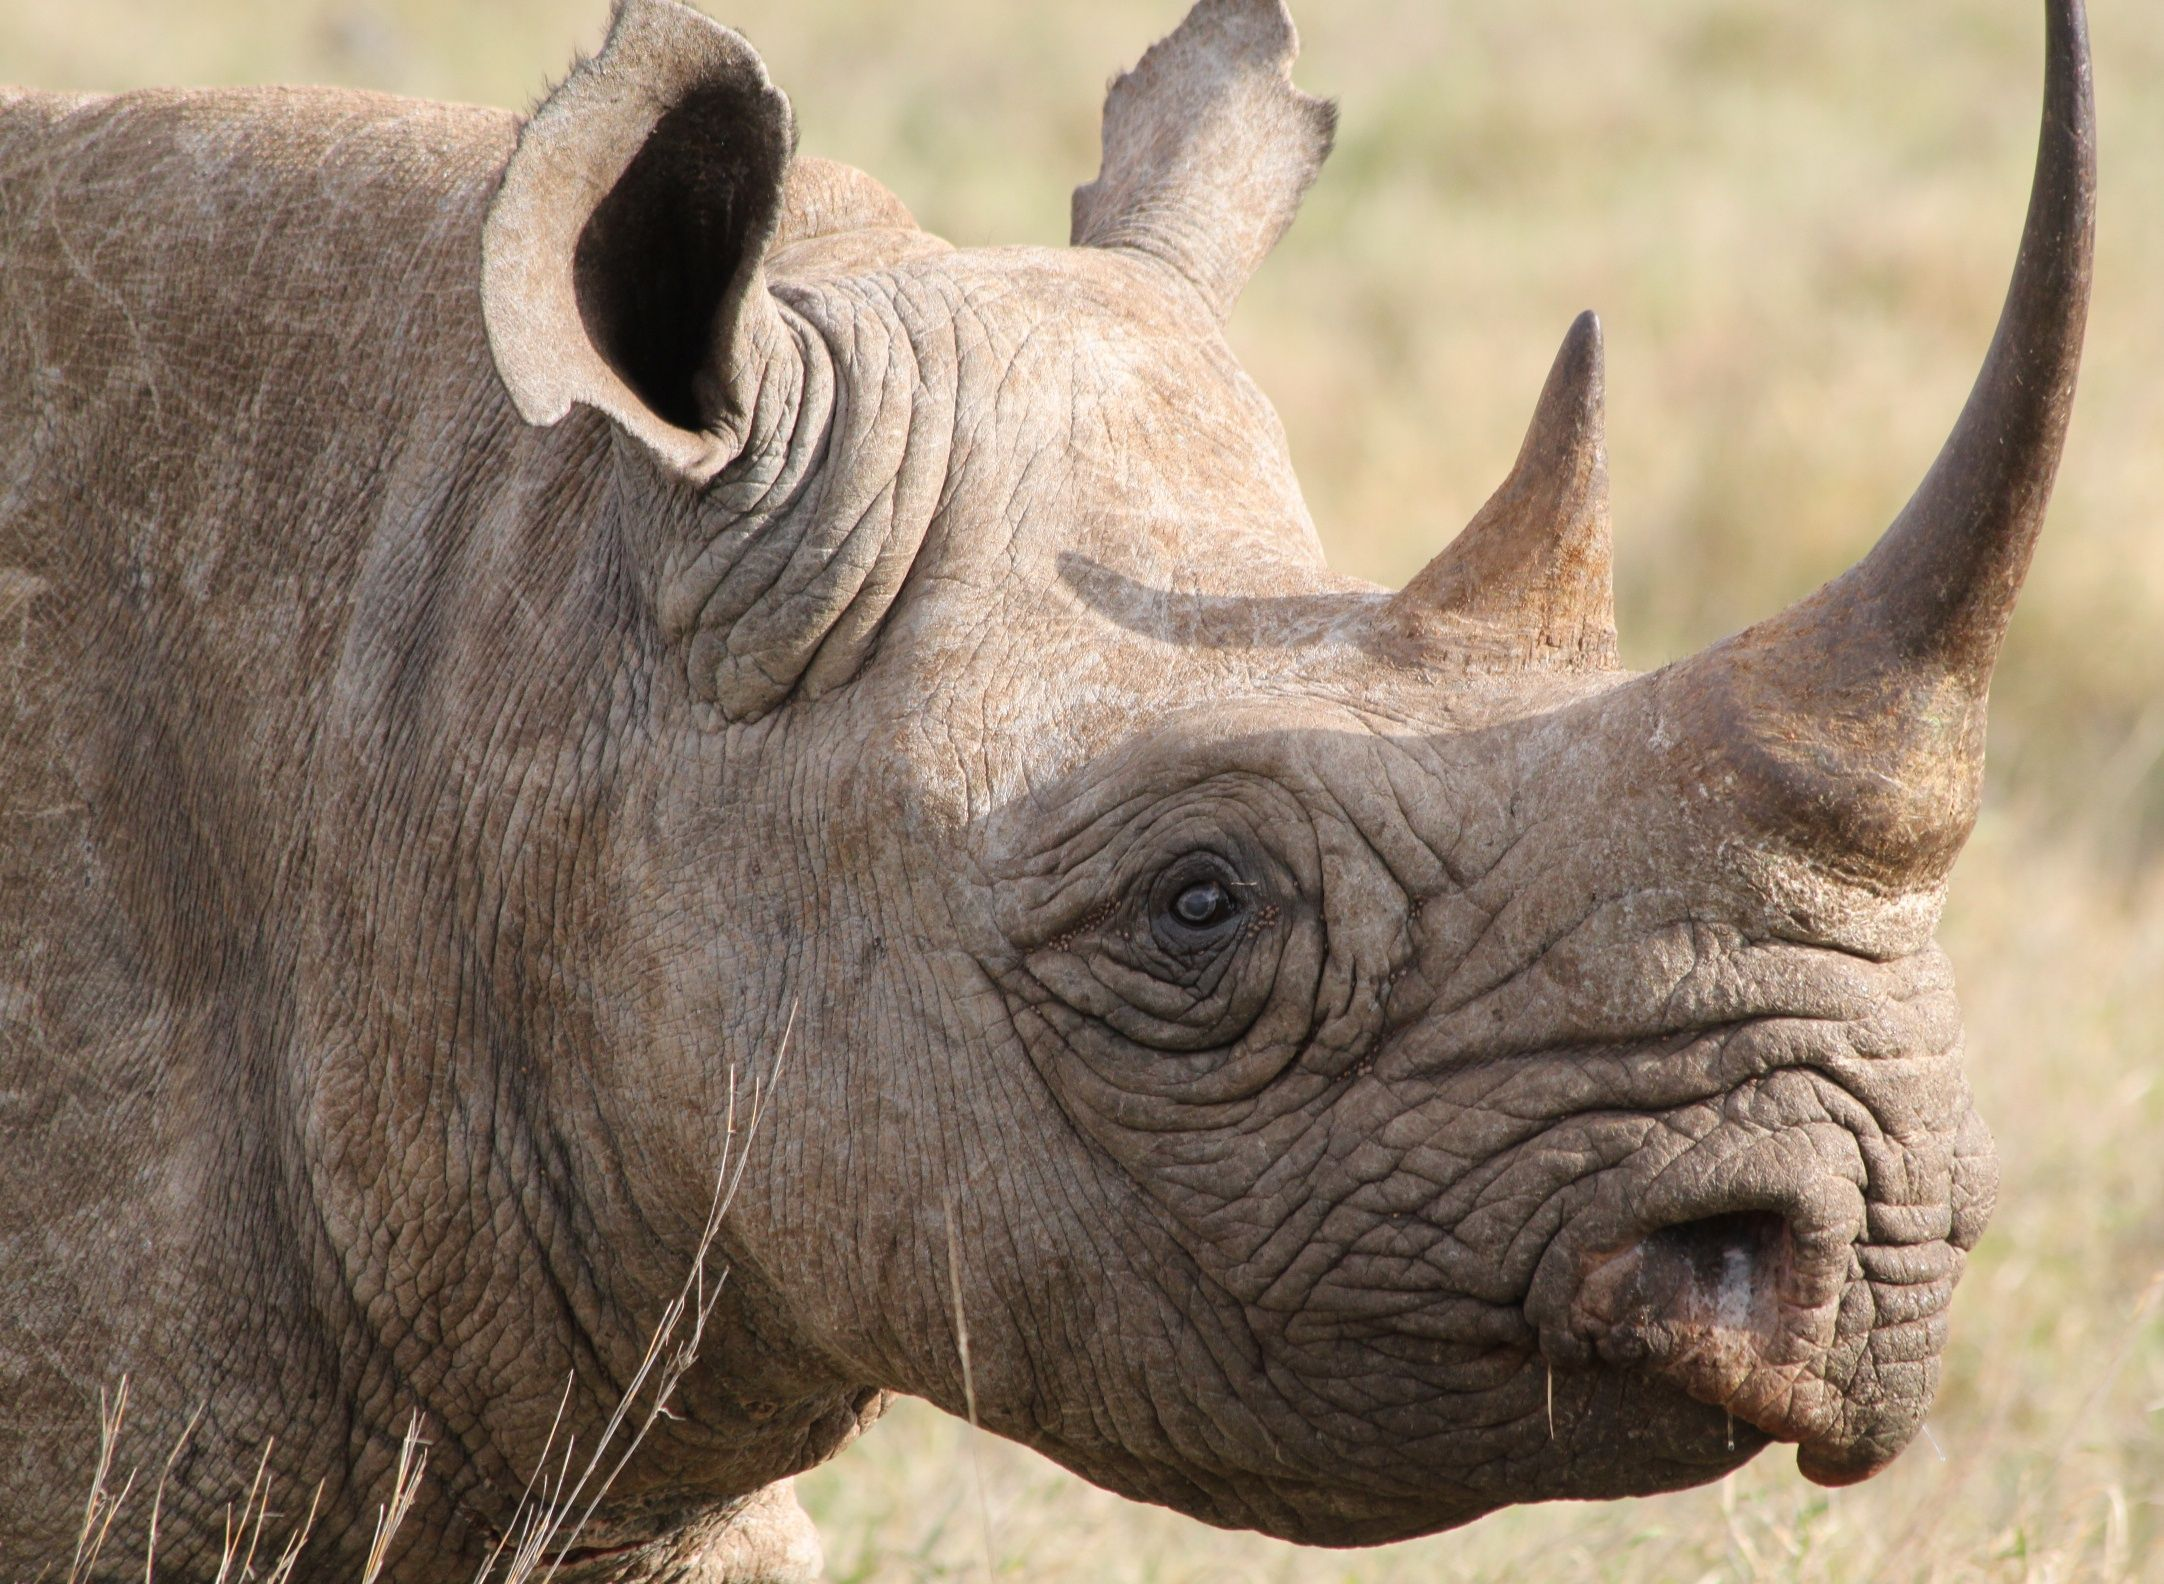 Rhino horns are not made of bone, but of keratin, the same